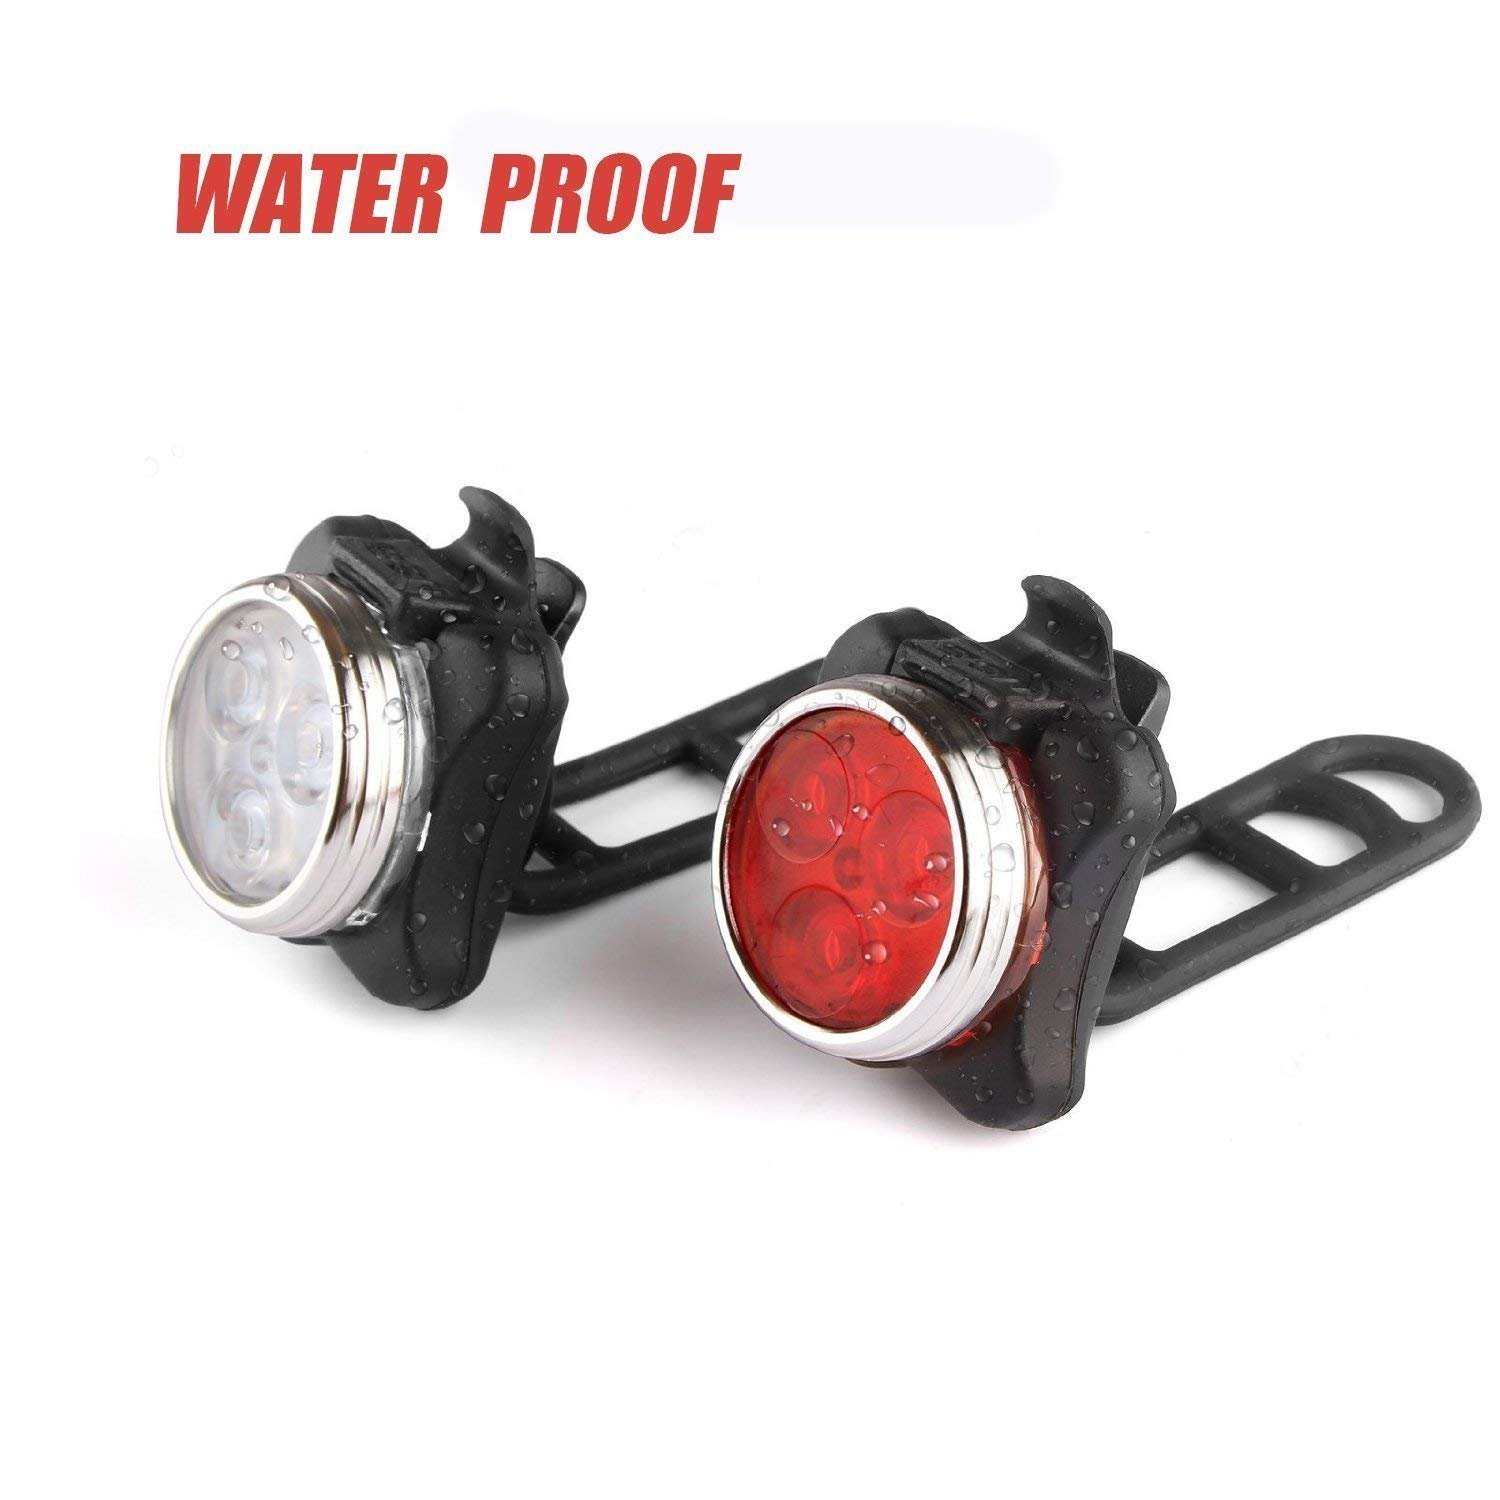 DUBUT21 Super Bright Bicycle Light Set USB Rechargeable Bike Headlight Free Tail Light Waterproof LED Bike Light Easy to Install Cycling Safety Commuter Flashlight Best Mountain Road City Bicycle by DUBUT21 (Image #4)